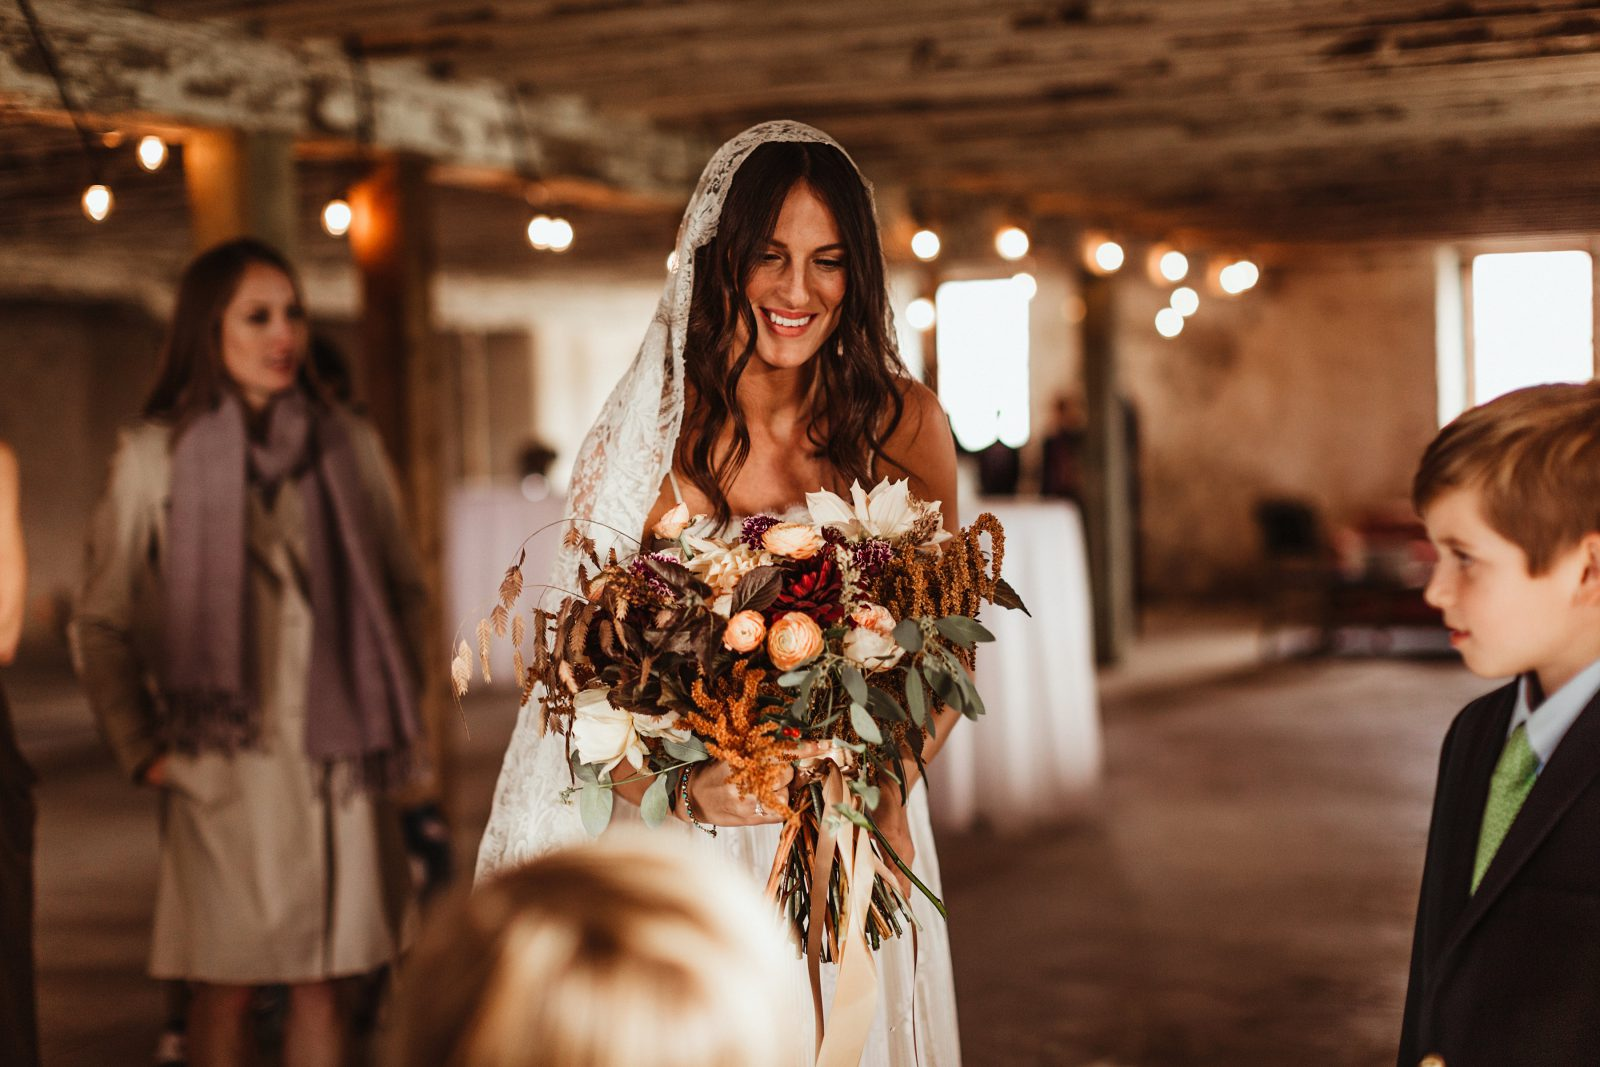 boho bride with rustic bouquet during wedding at historic penn farm